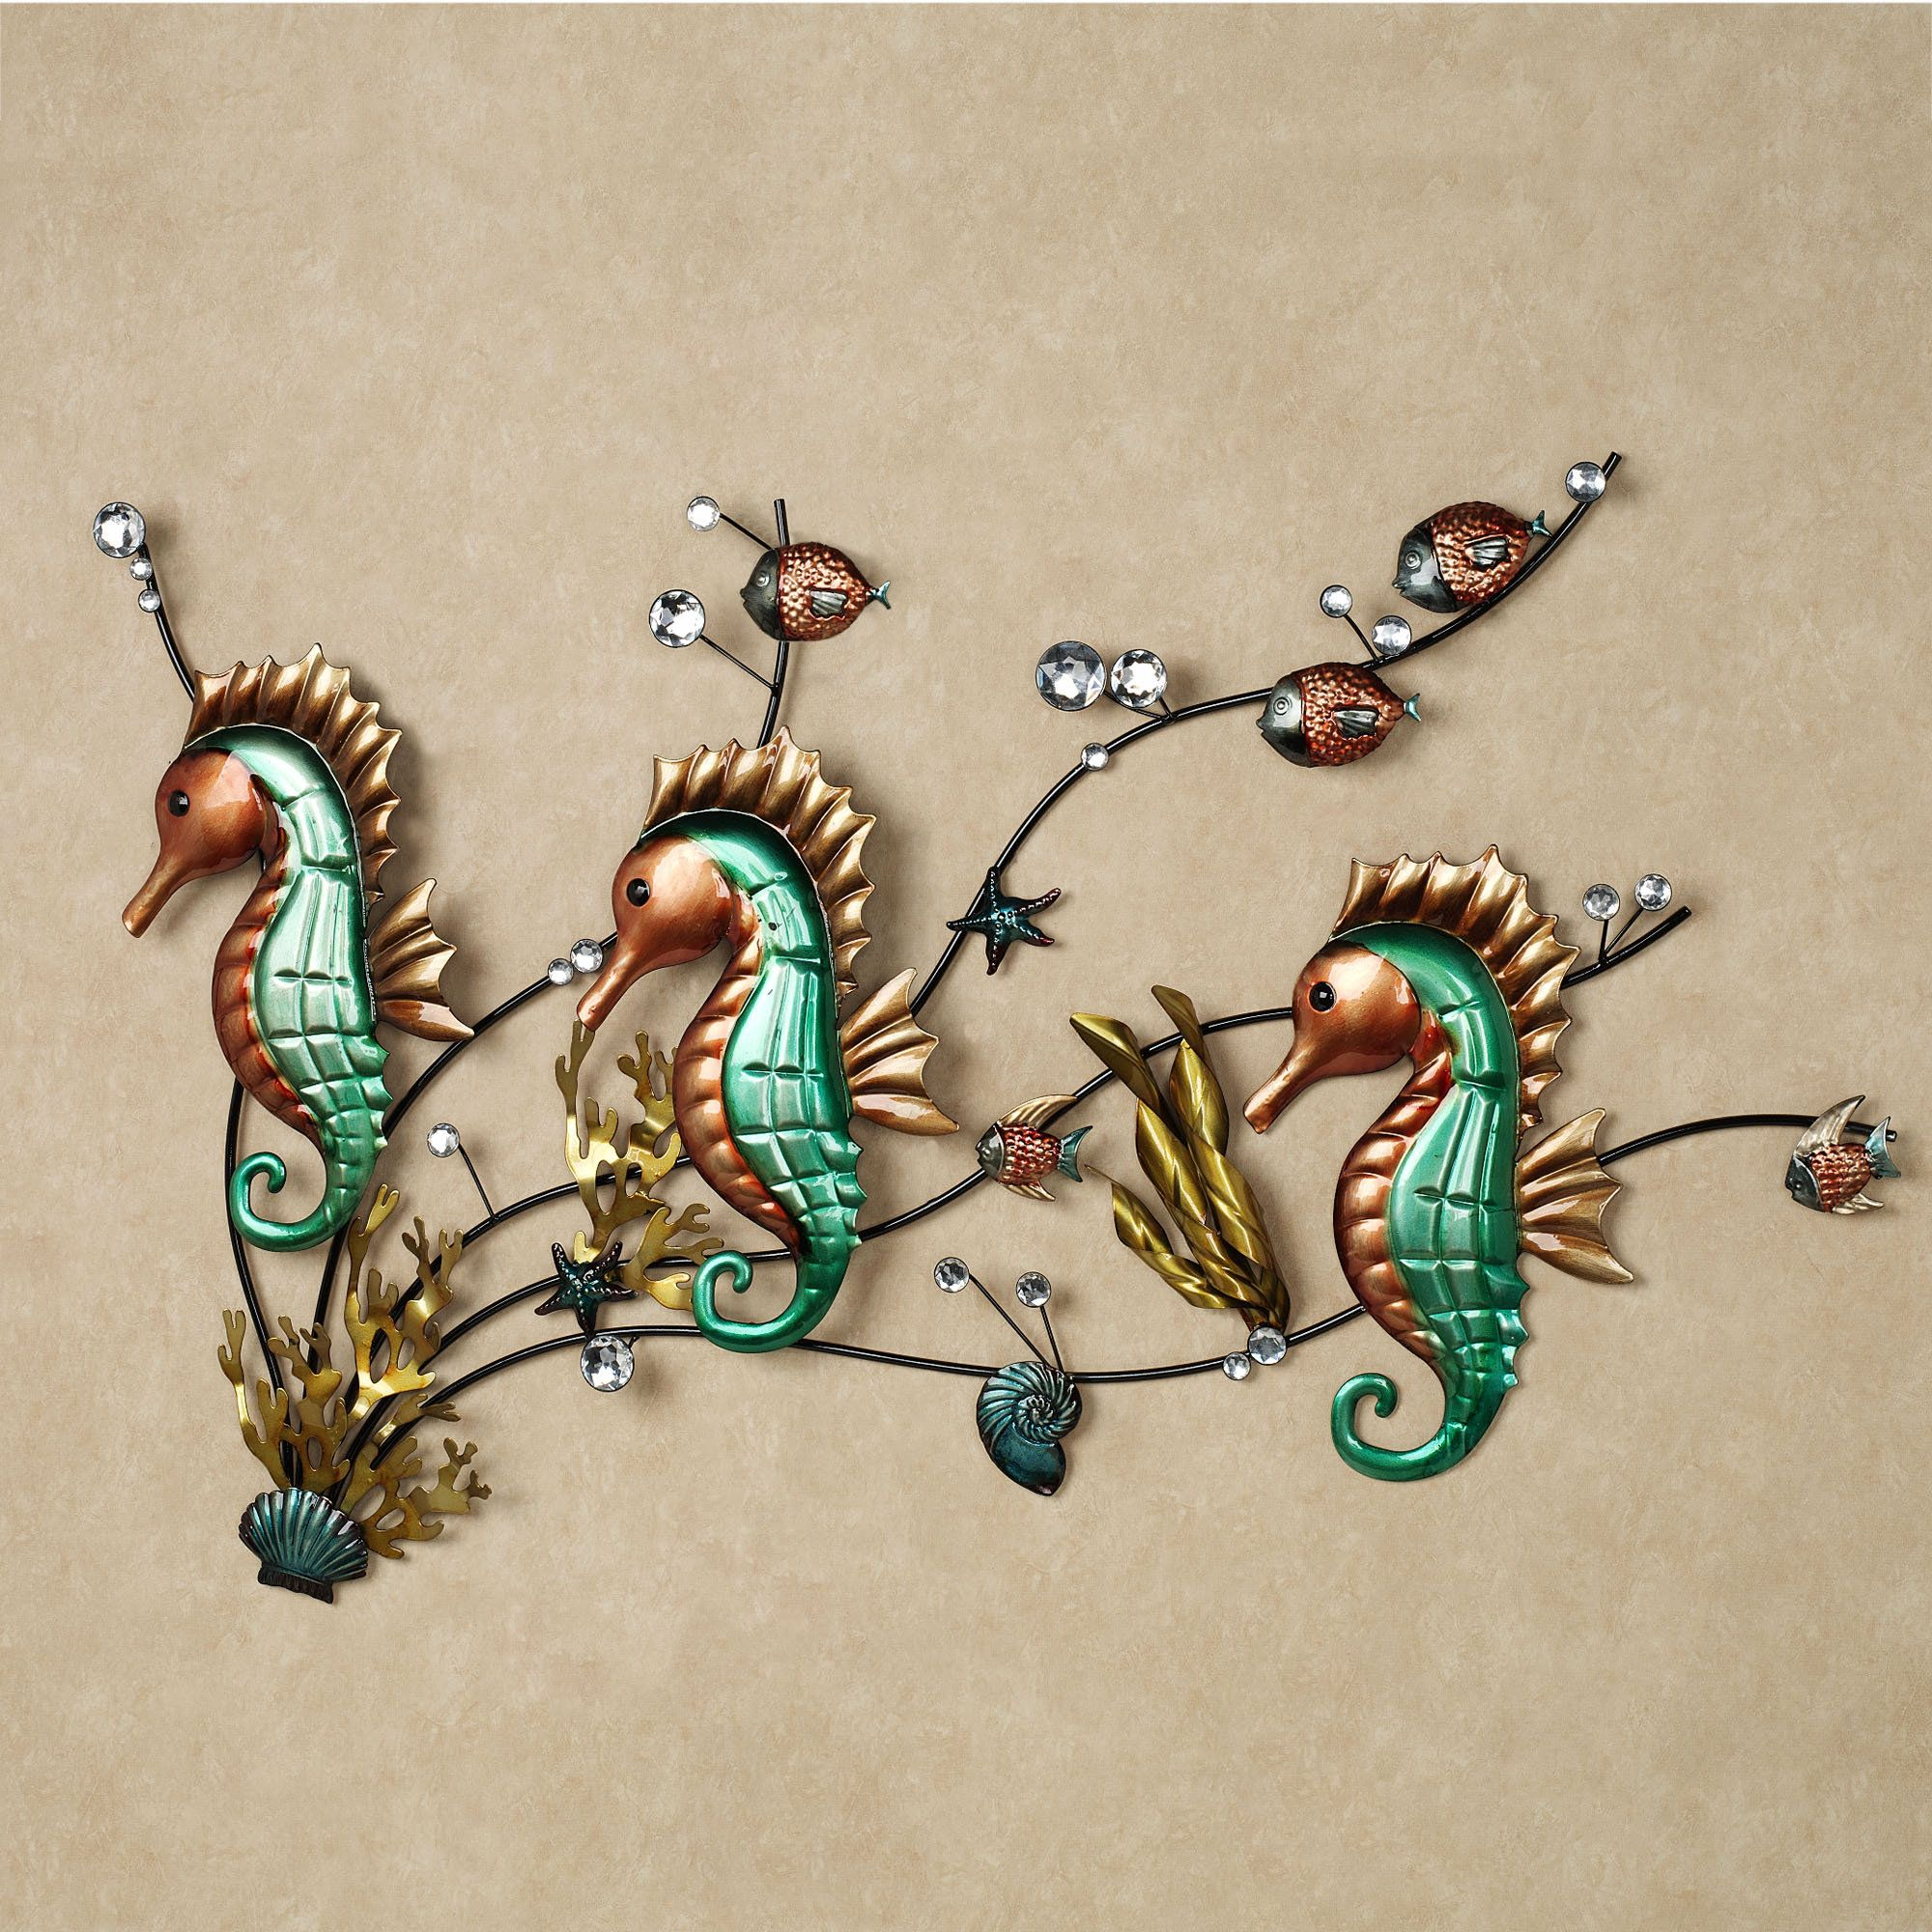 Seahorse Wall Art floral jubilee empire valance light cream 110 x 28 | sculpture